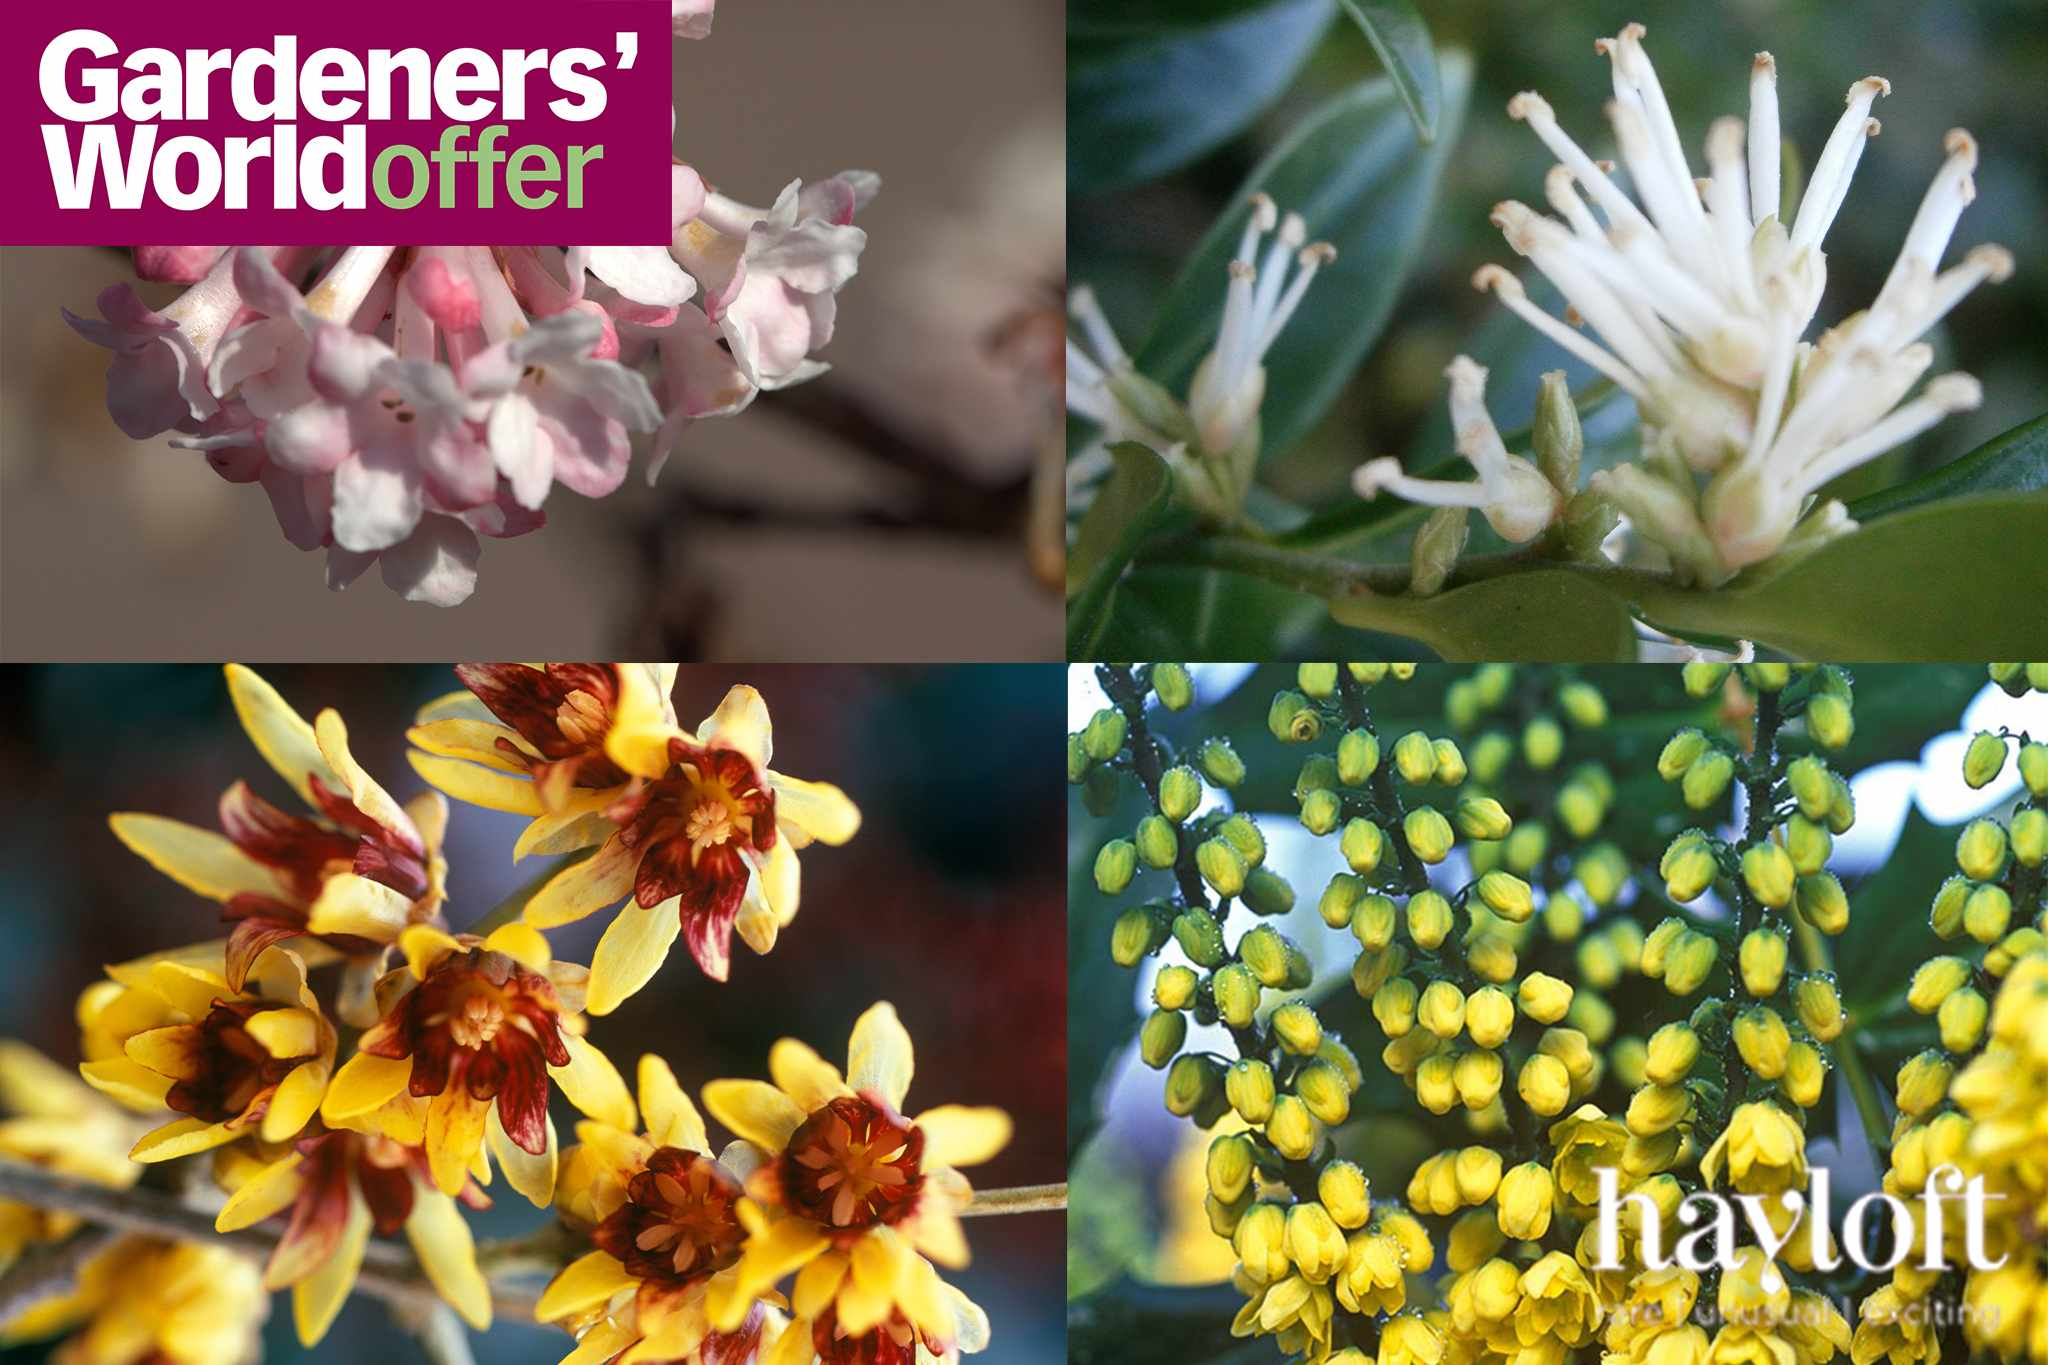 Save on fragrant winter shrubs from Hayloft